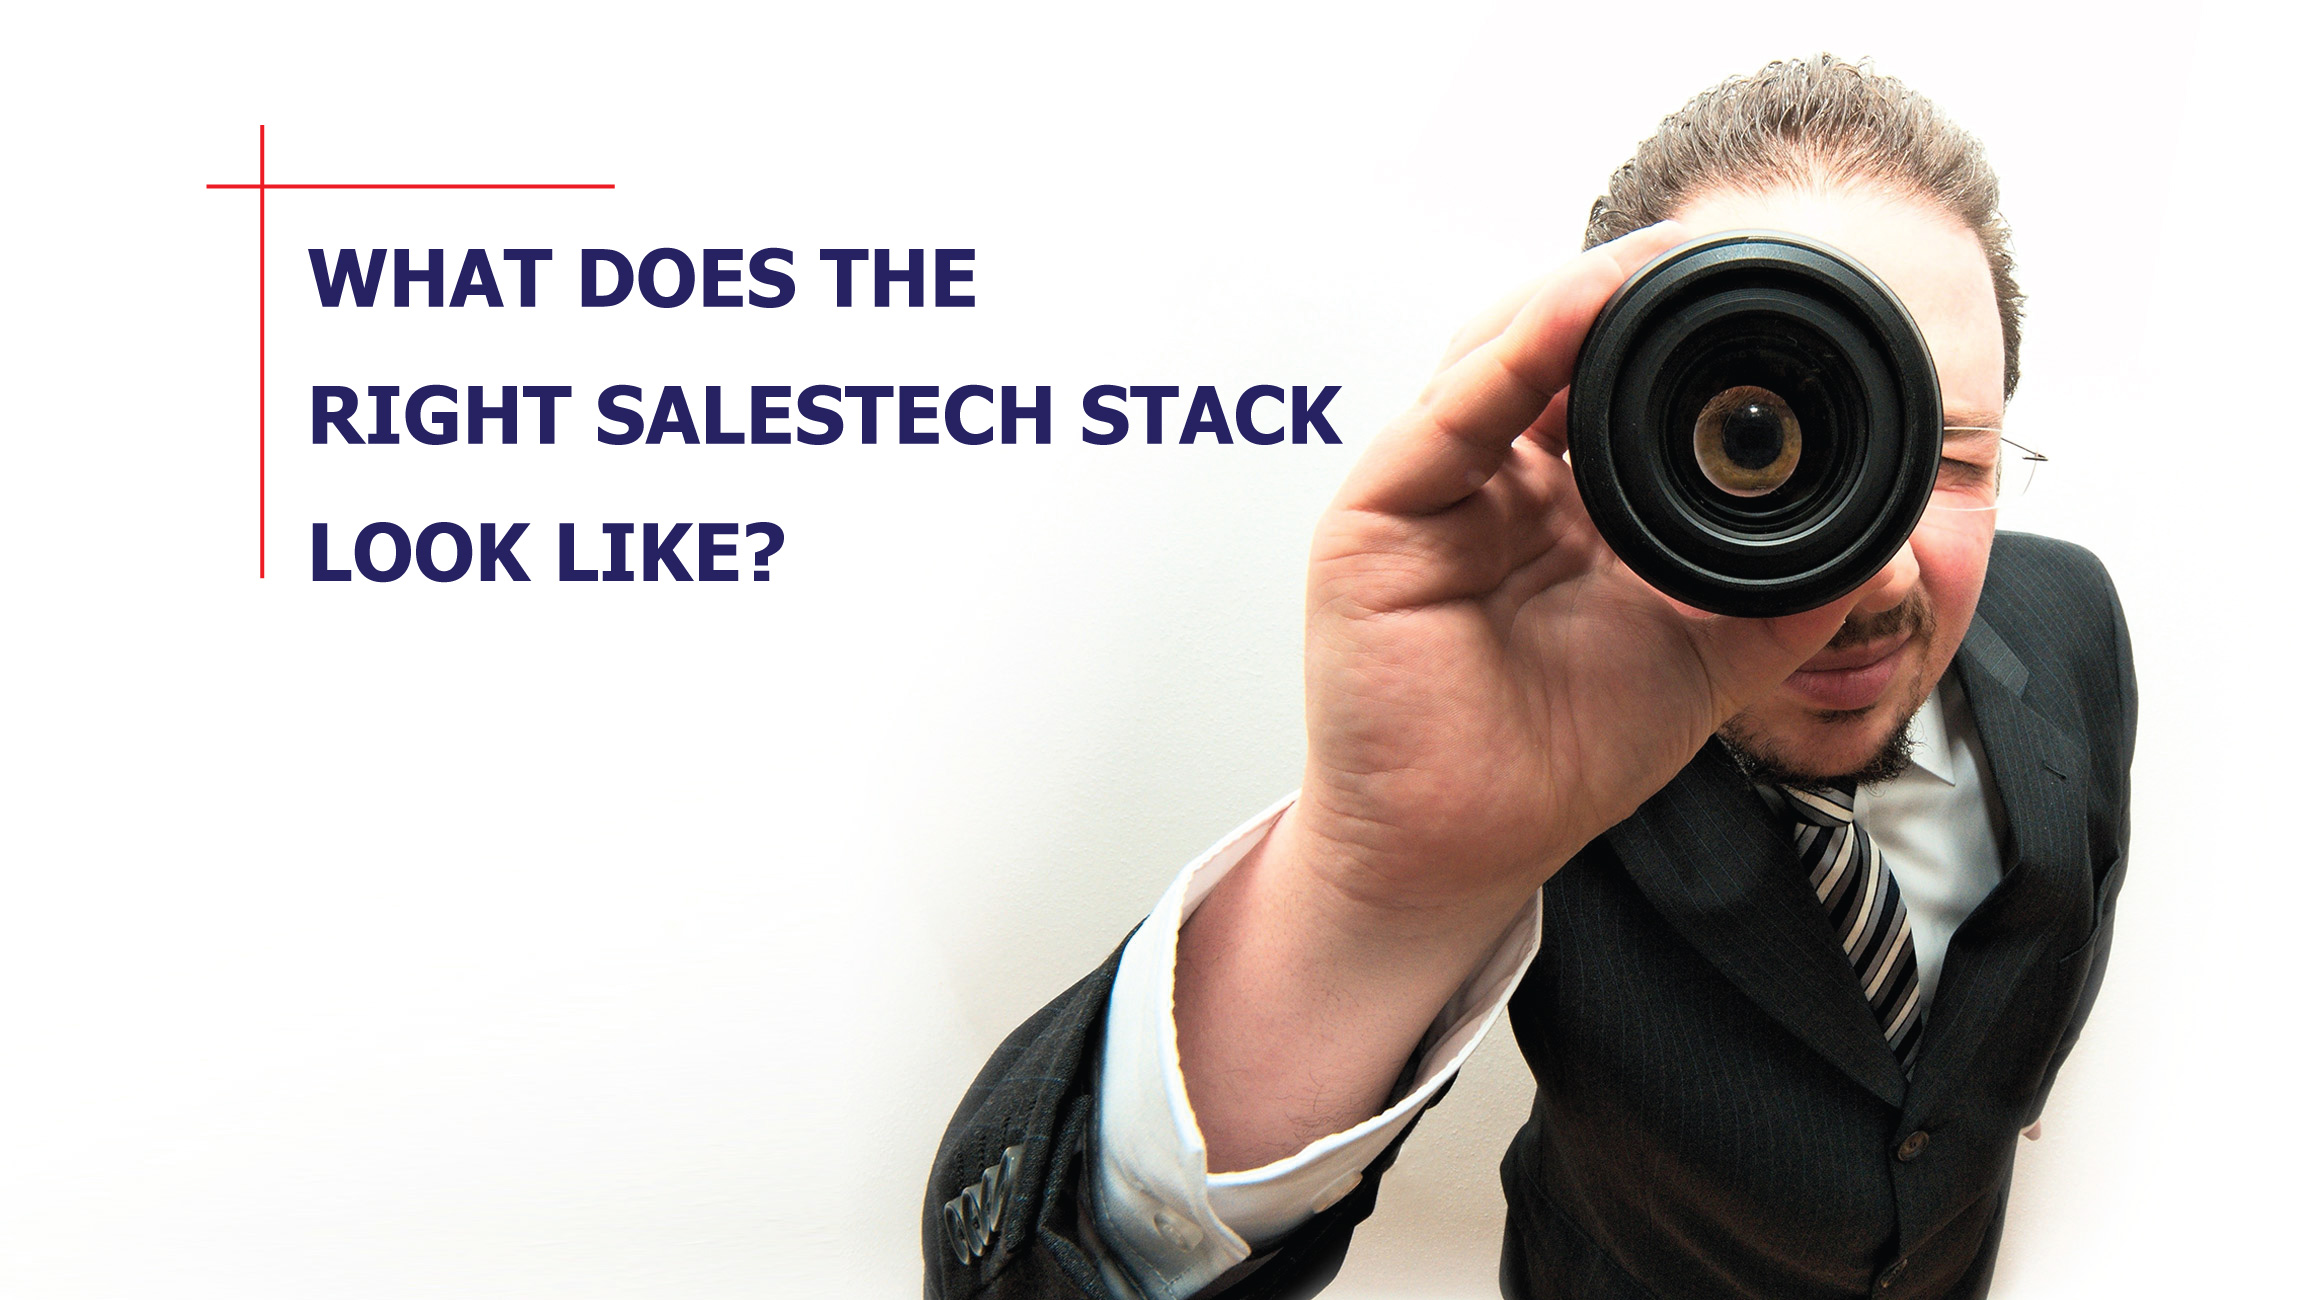 Looking for the Perfect SalesTech Stack?